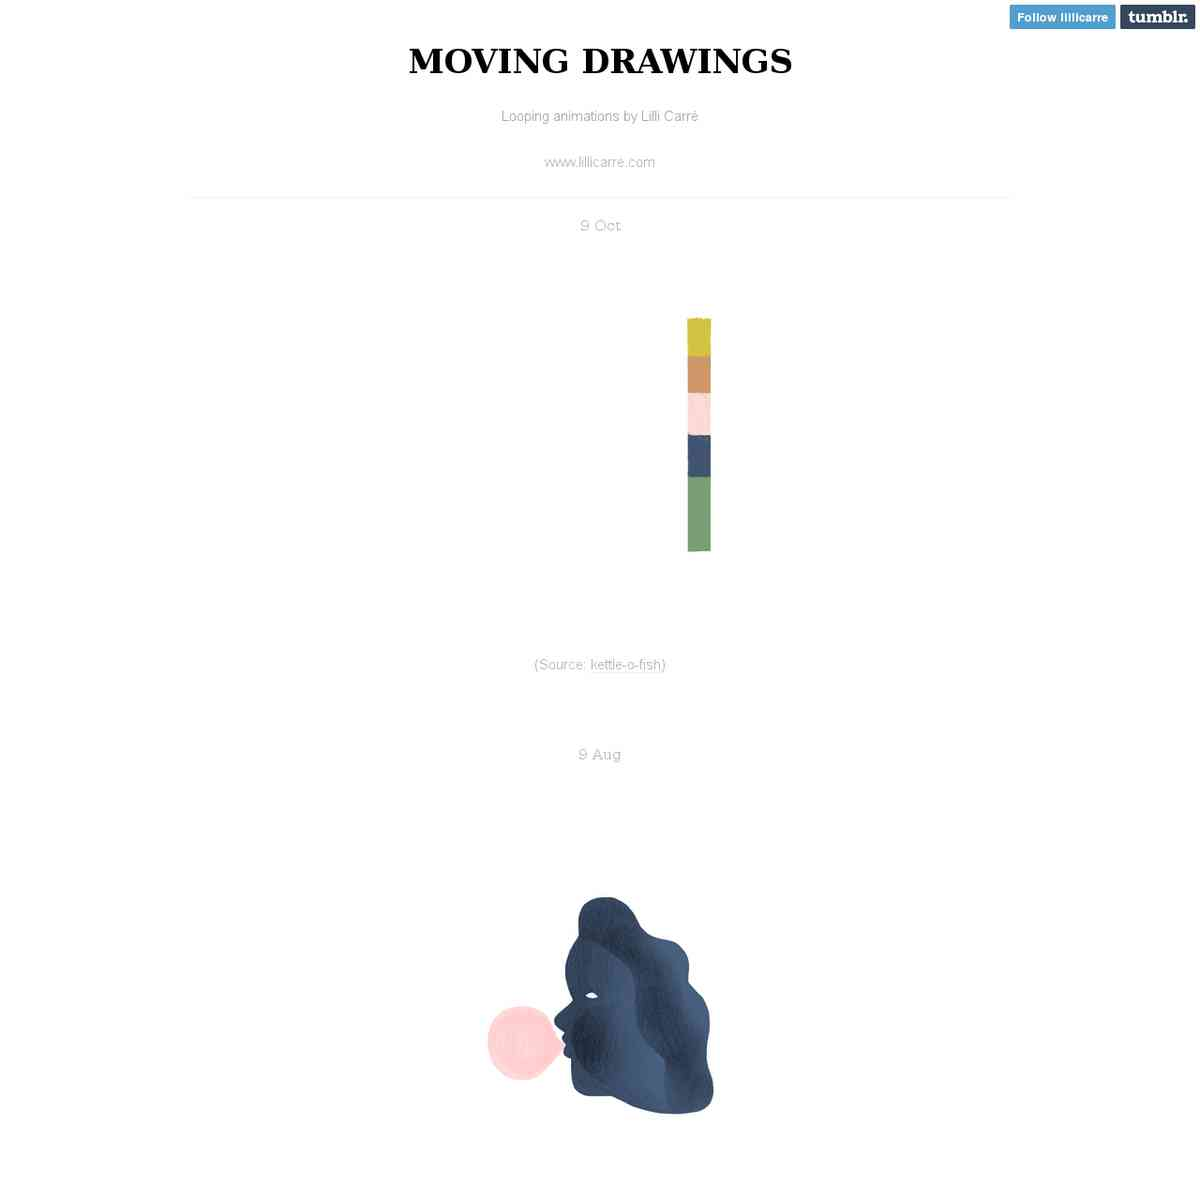 MOVING DRAWINGS